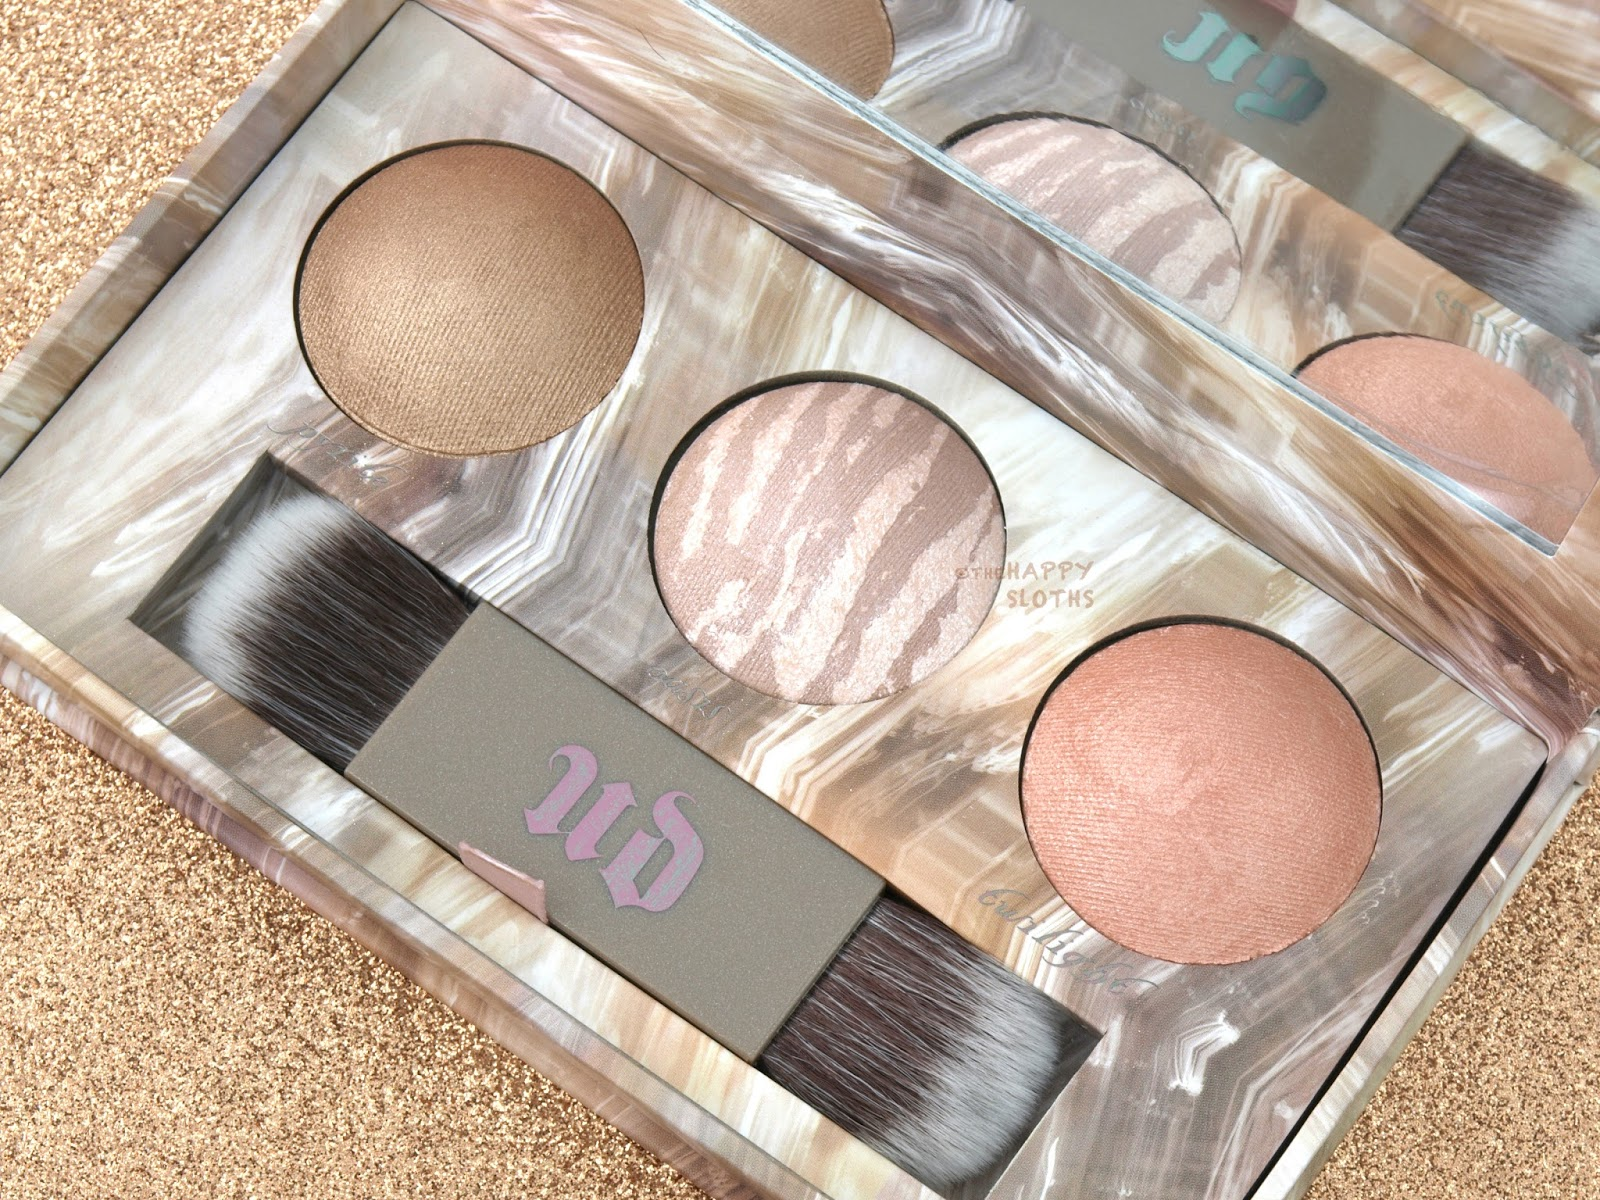 Urban Decay Naked Illuminated Trio: Review and Swatches